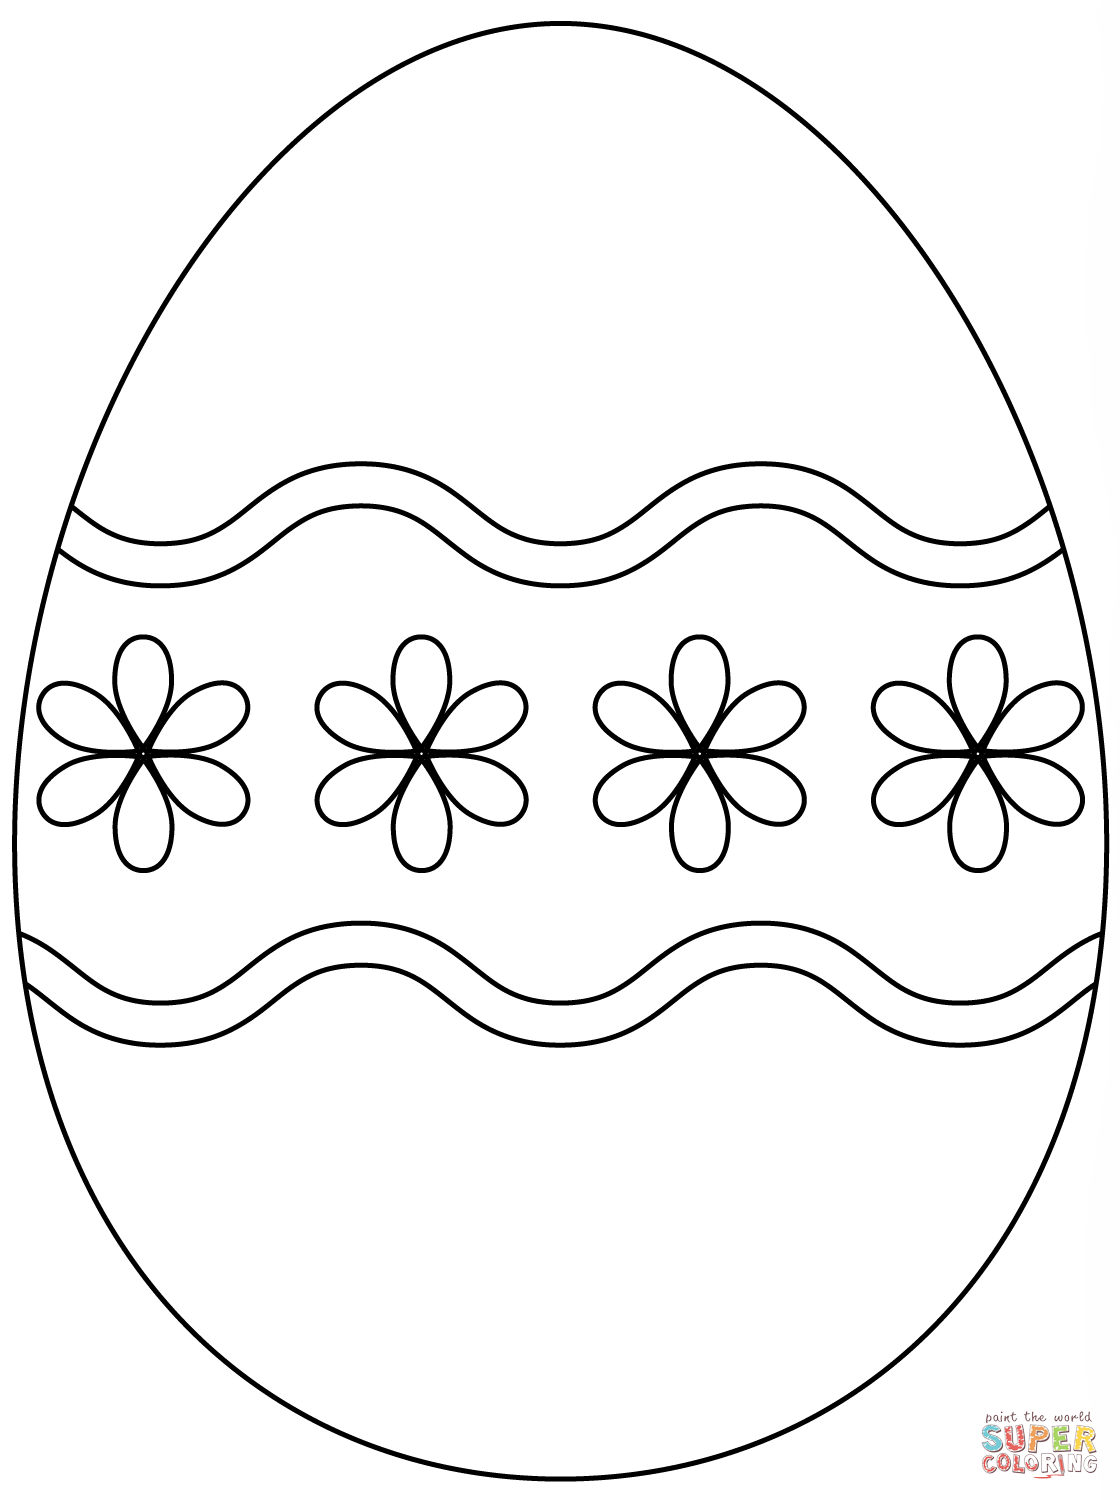 Easter Egg With Simple Flower Pattern Coloring Page